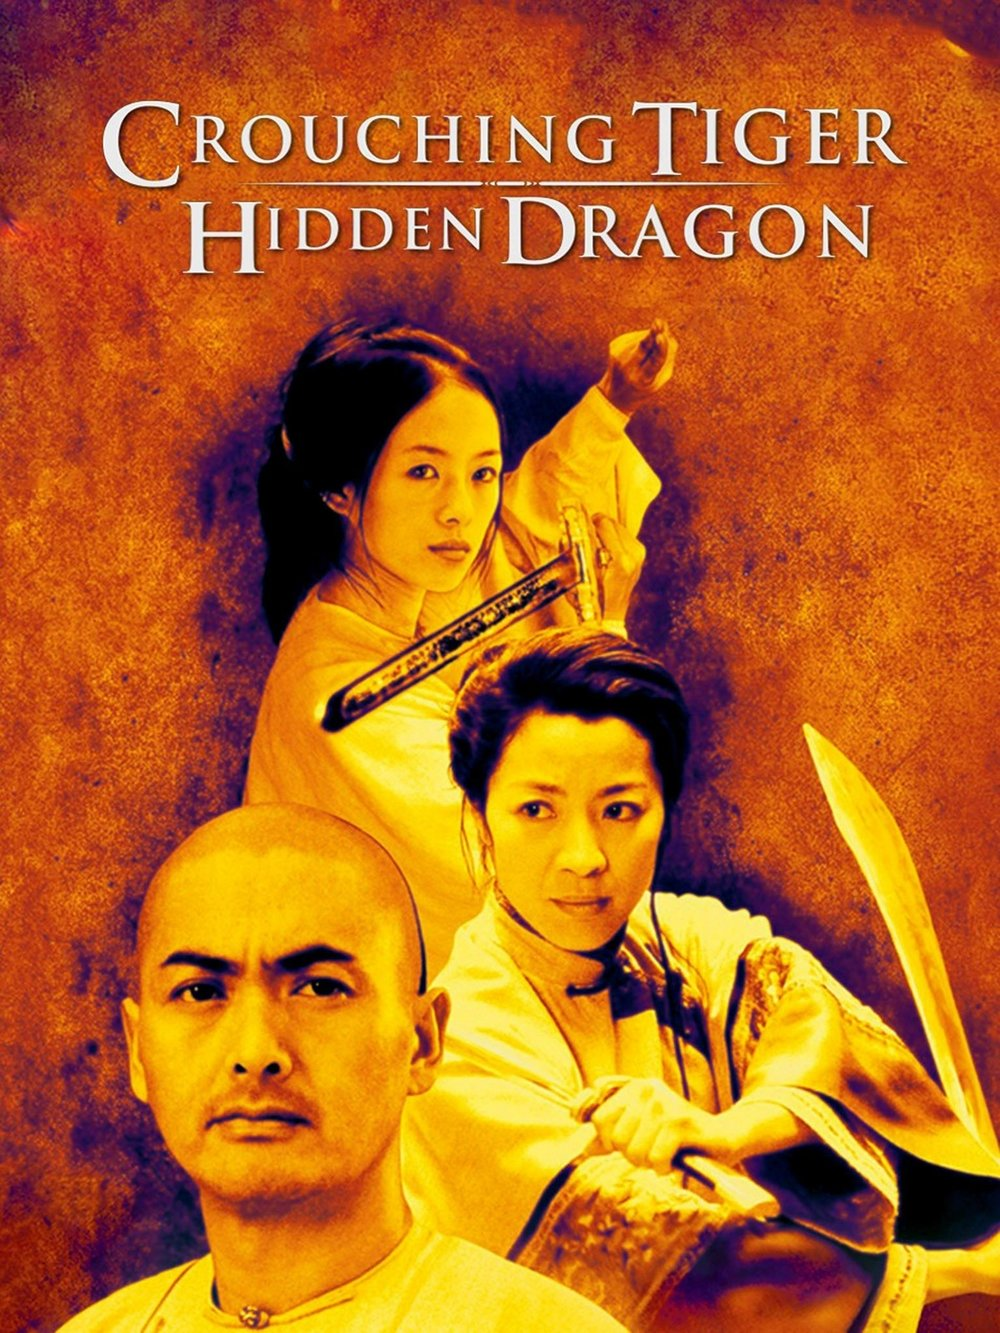 Crouching_Tiger_Hidden_Dragon_2000_7428399.jpg